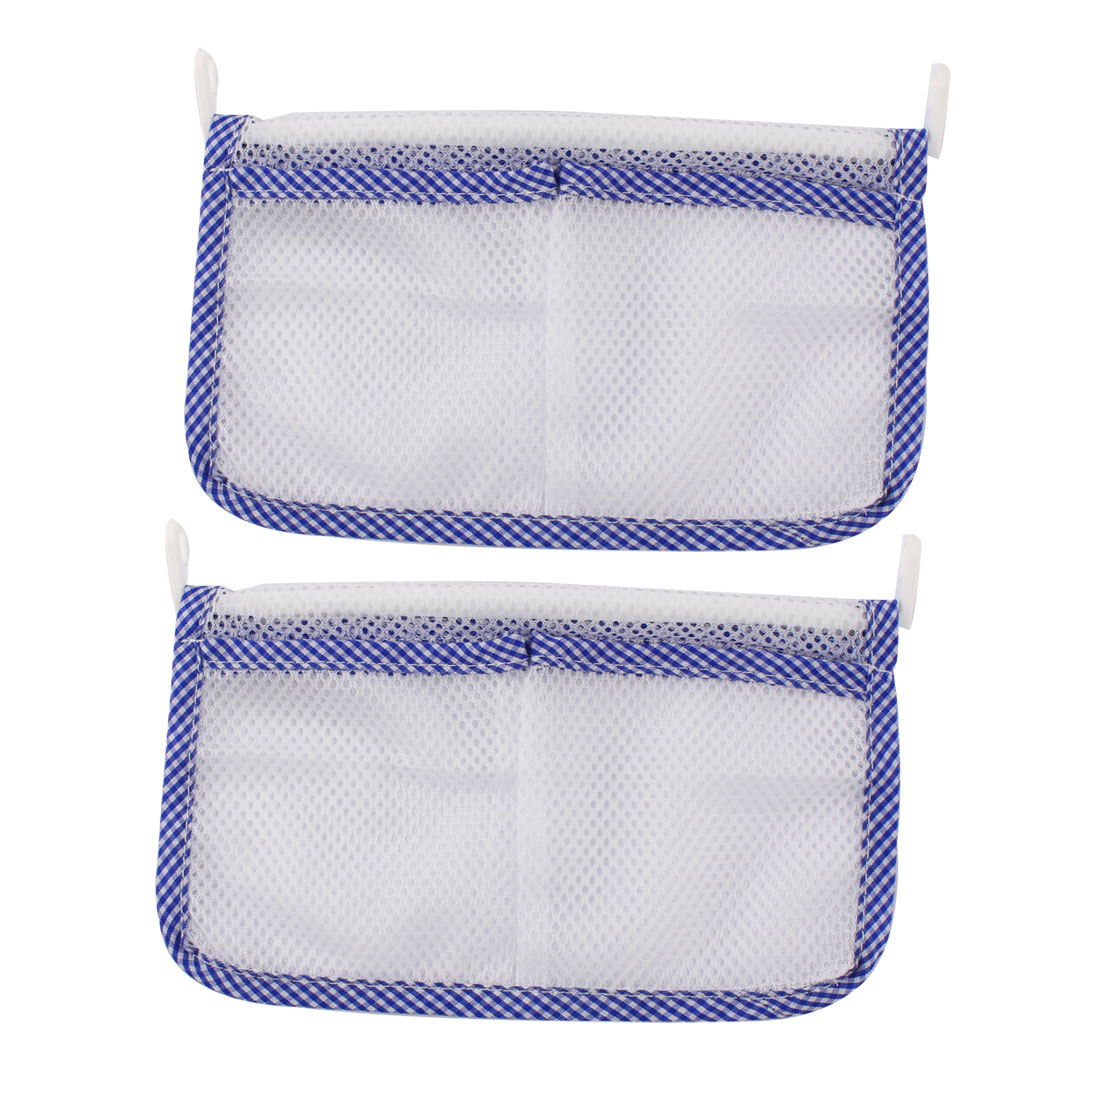 Home Refrigerator 2 Pocket Space-saving Hanging Hook Storage Mesh Bag Pouch Blue 2pcs